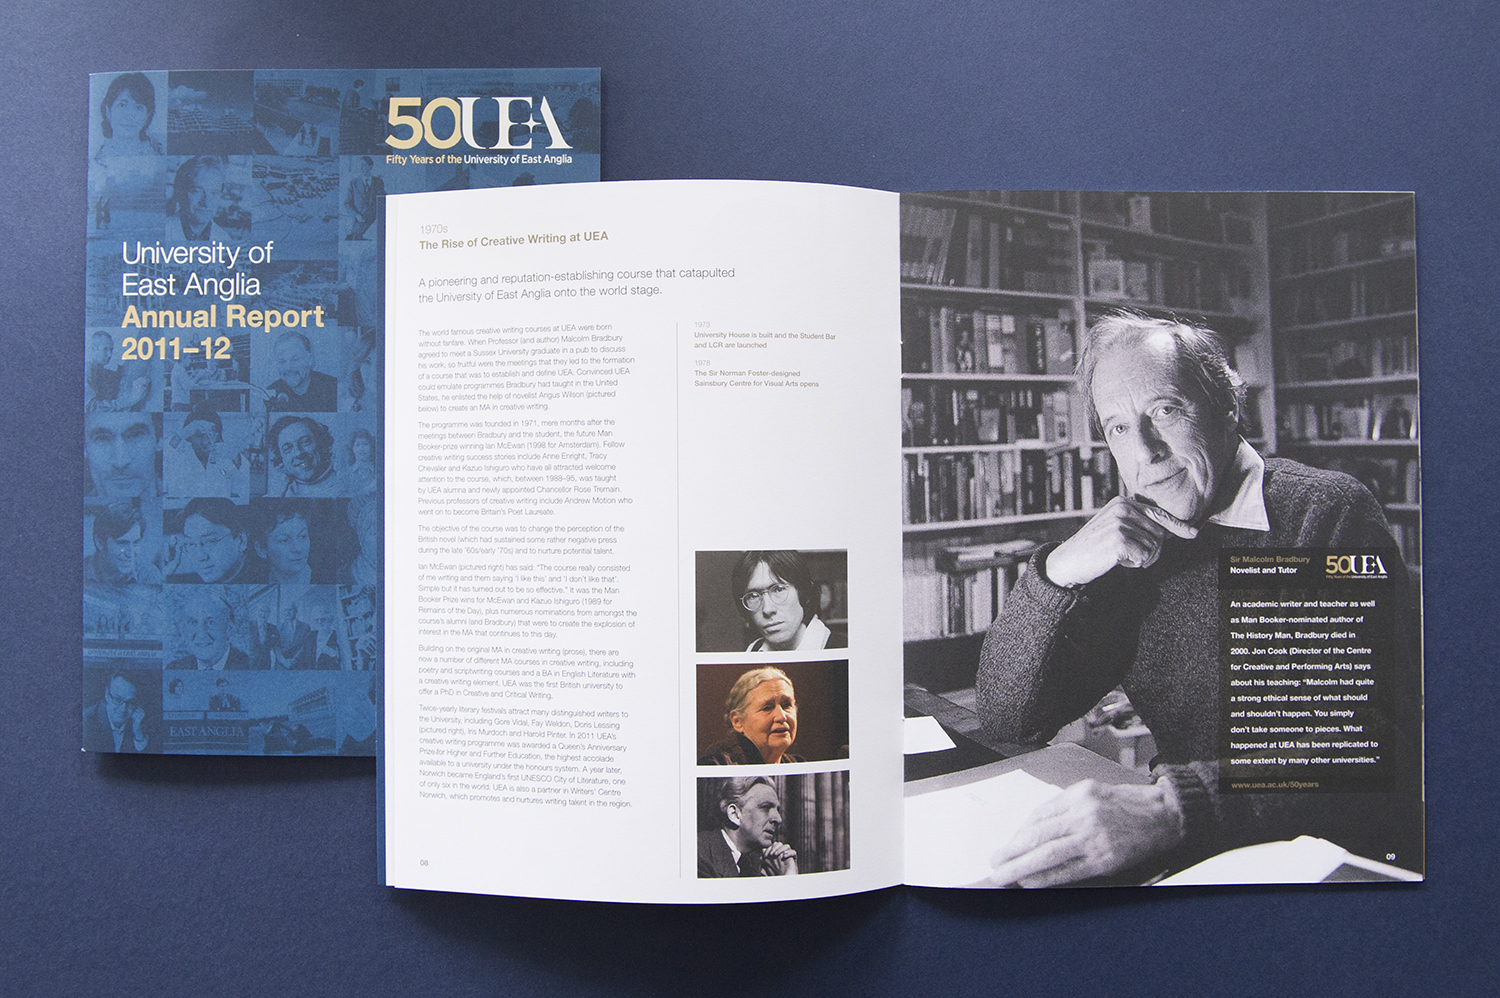 english literature and creative writing uea Biography andrew cowan is a graduate of uea with a ba in english and american studies and an ma in creative writing before joining the faculty in 2004 he was twice a royal literary fund writing fellow at uea, working with students on their expository and creative writing skills.